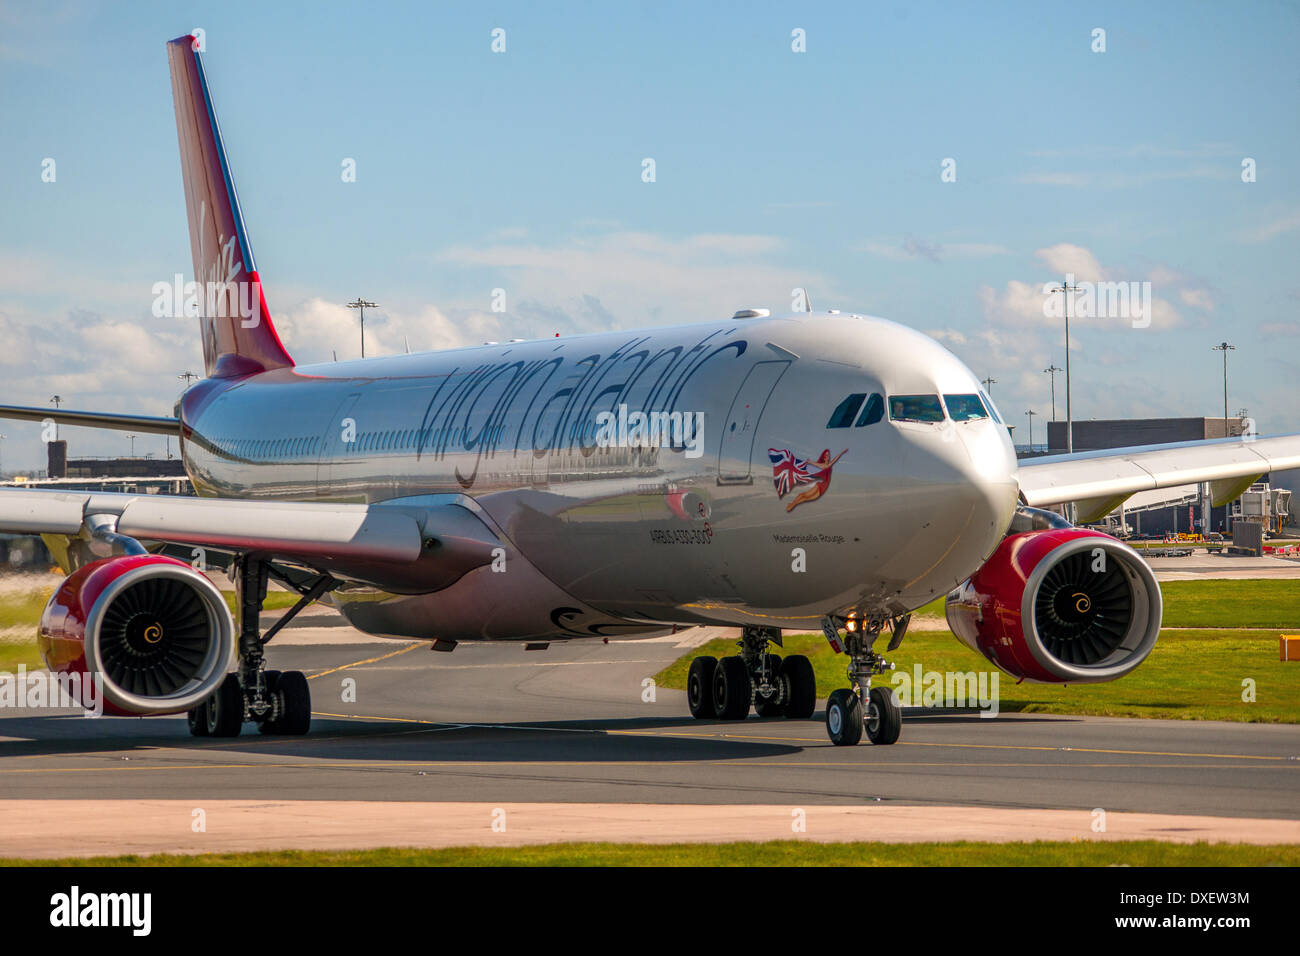 A brand new virgin atlantic airbus A330-300 departs manchester airport 2012 england - Stock Image